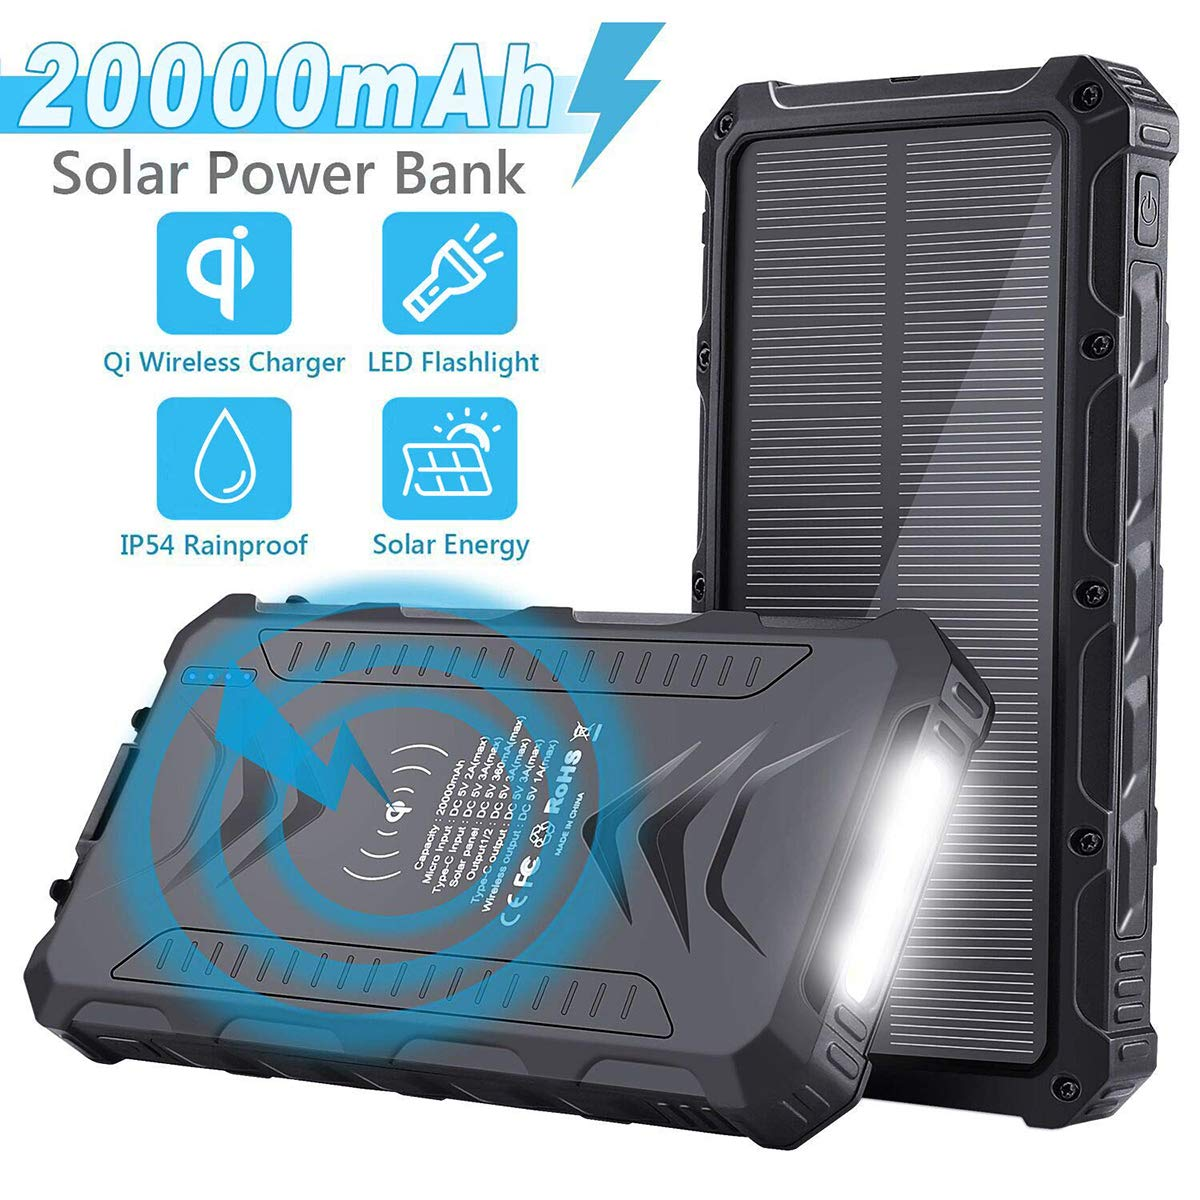 Solar Power Bank, Uplayteck 20000mAh Portable Phone Charger with 4 Outputs, Qi Wireless, Type-C, SOS Flashlight, Rainproof External Backup Battery for Hiking Camping Outing by Uplayteck